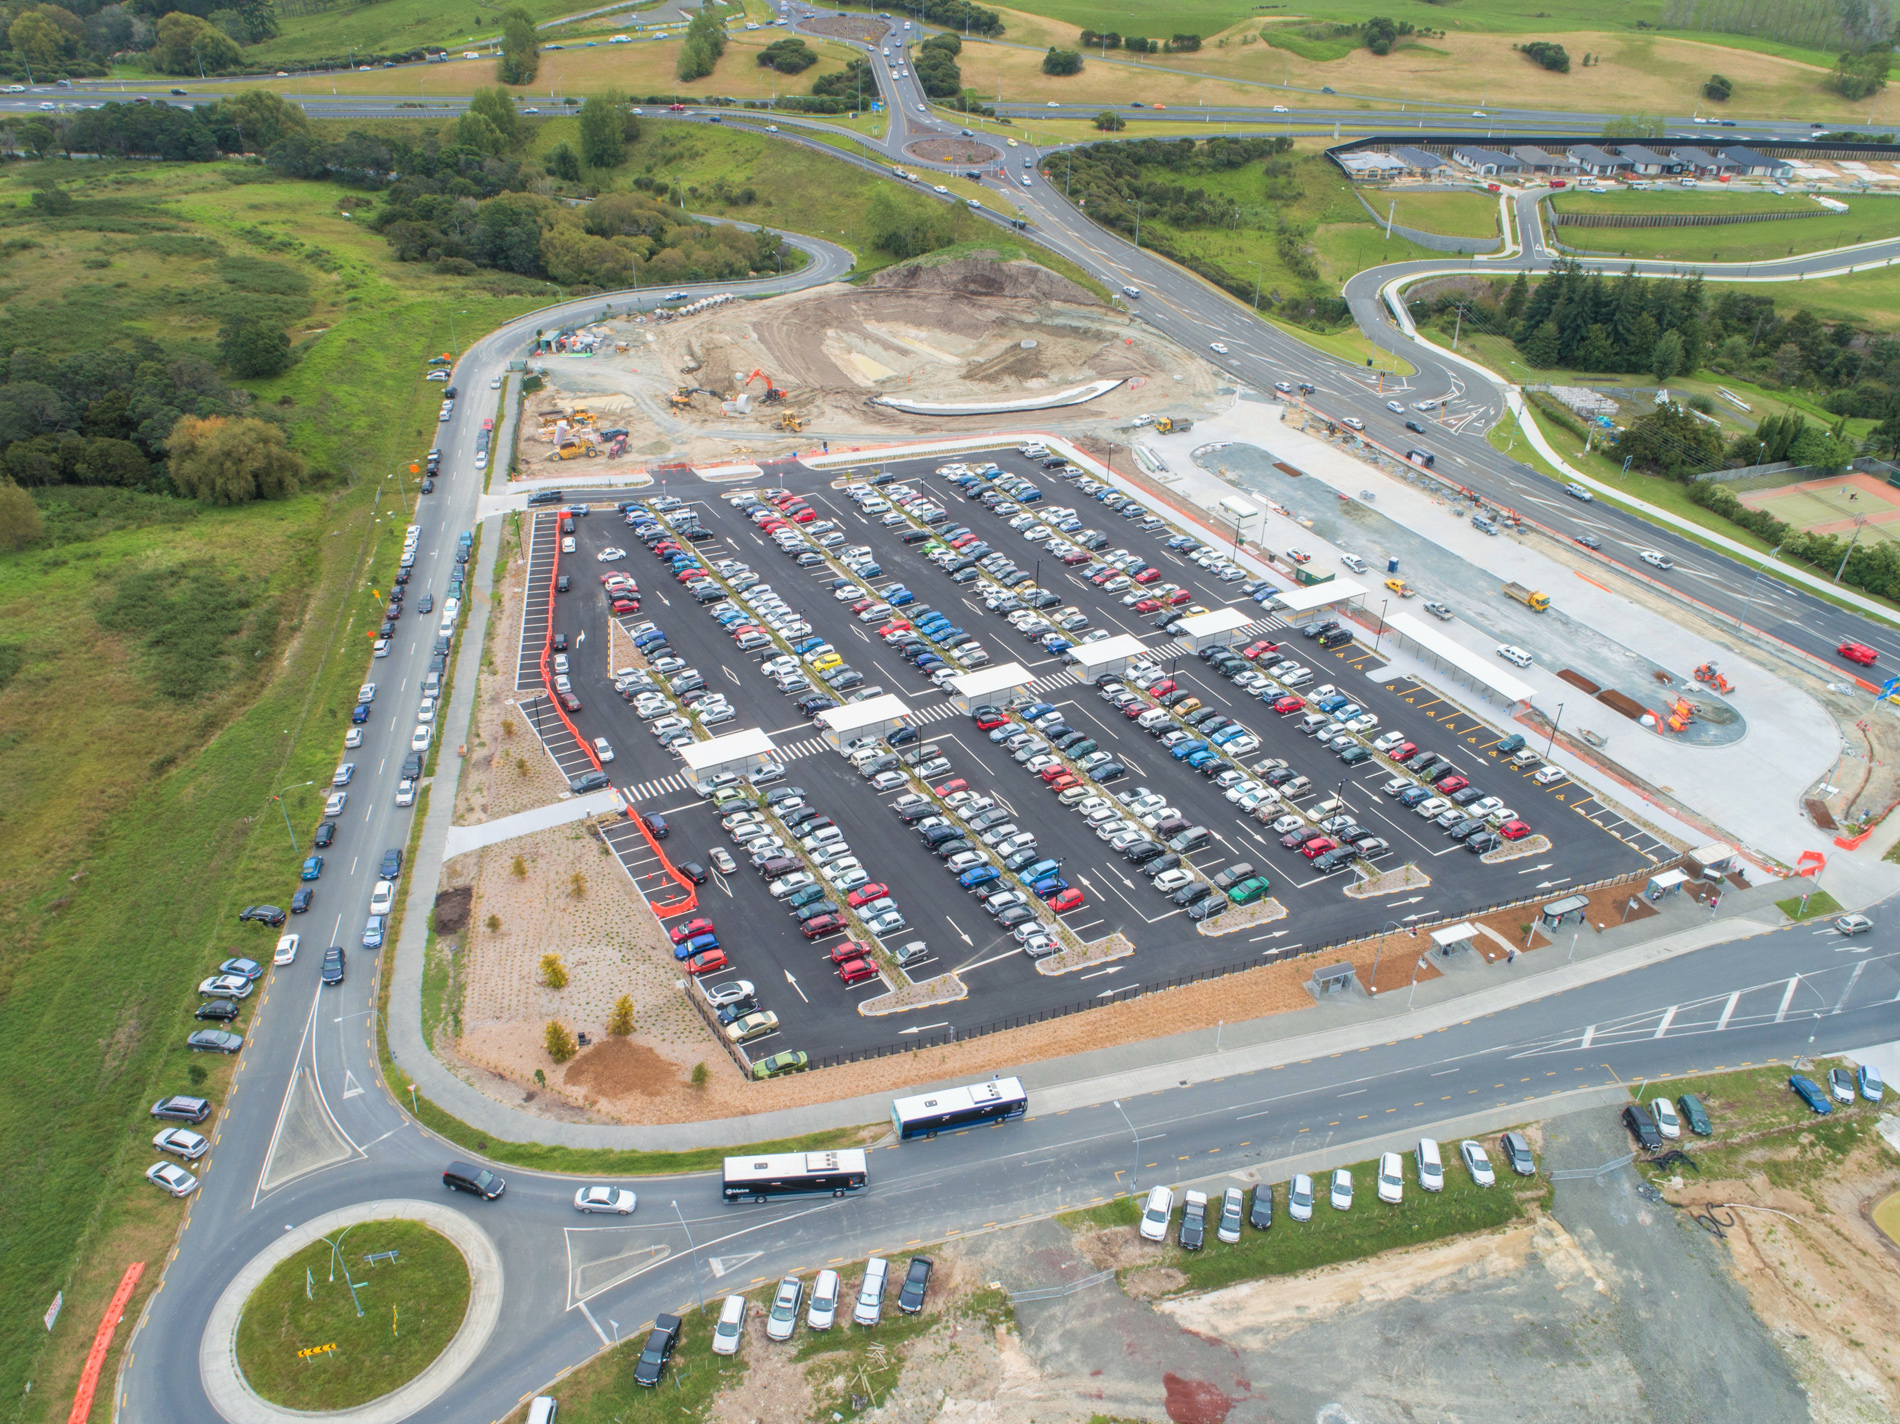 Overhead photo of a carpark full of cars with engineering construction in the background